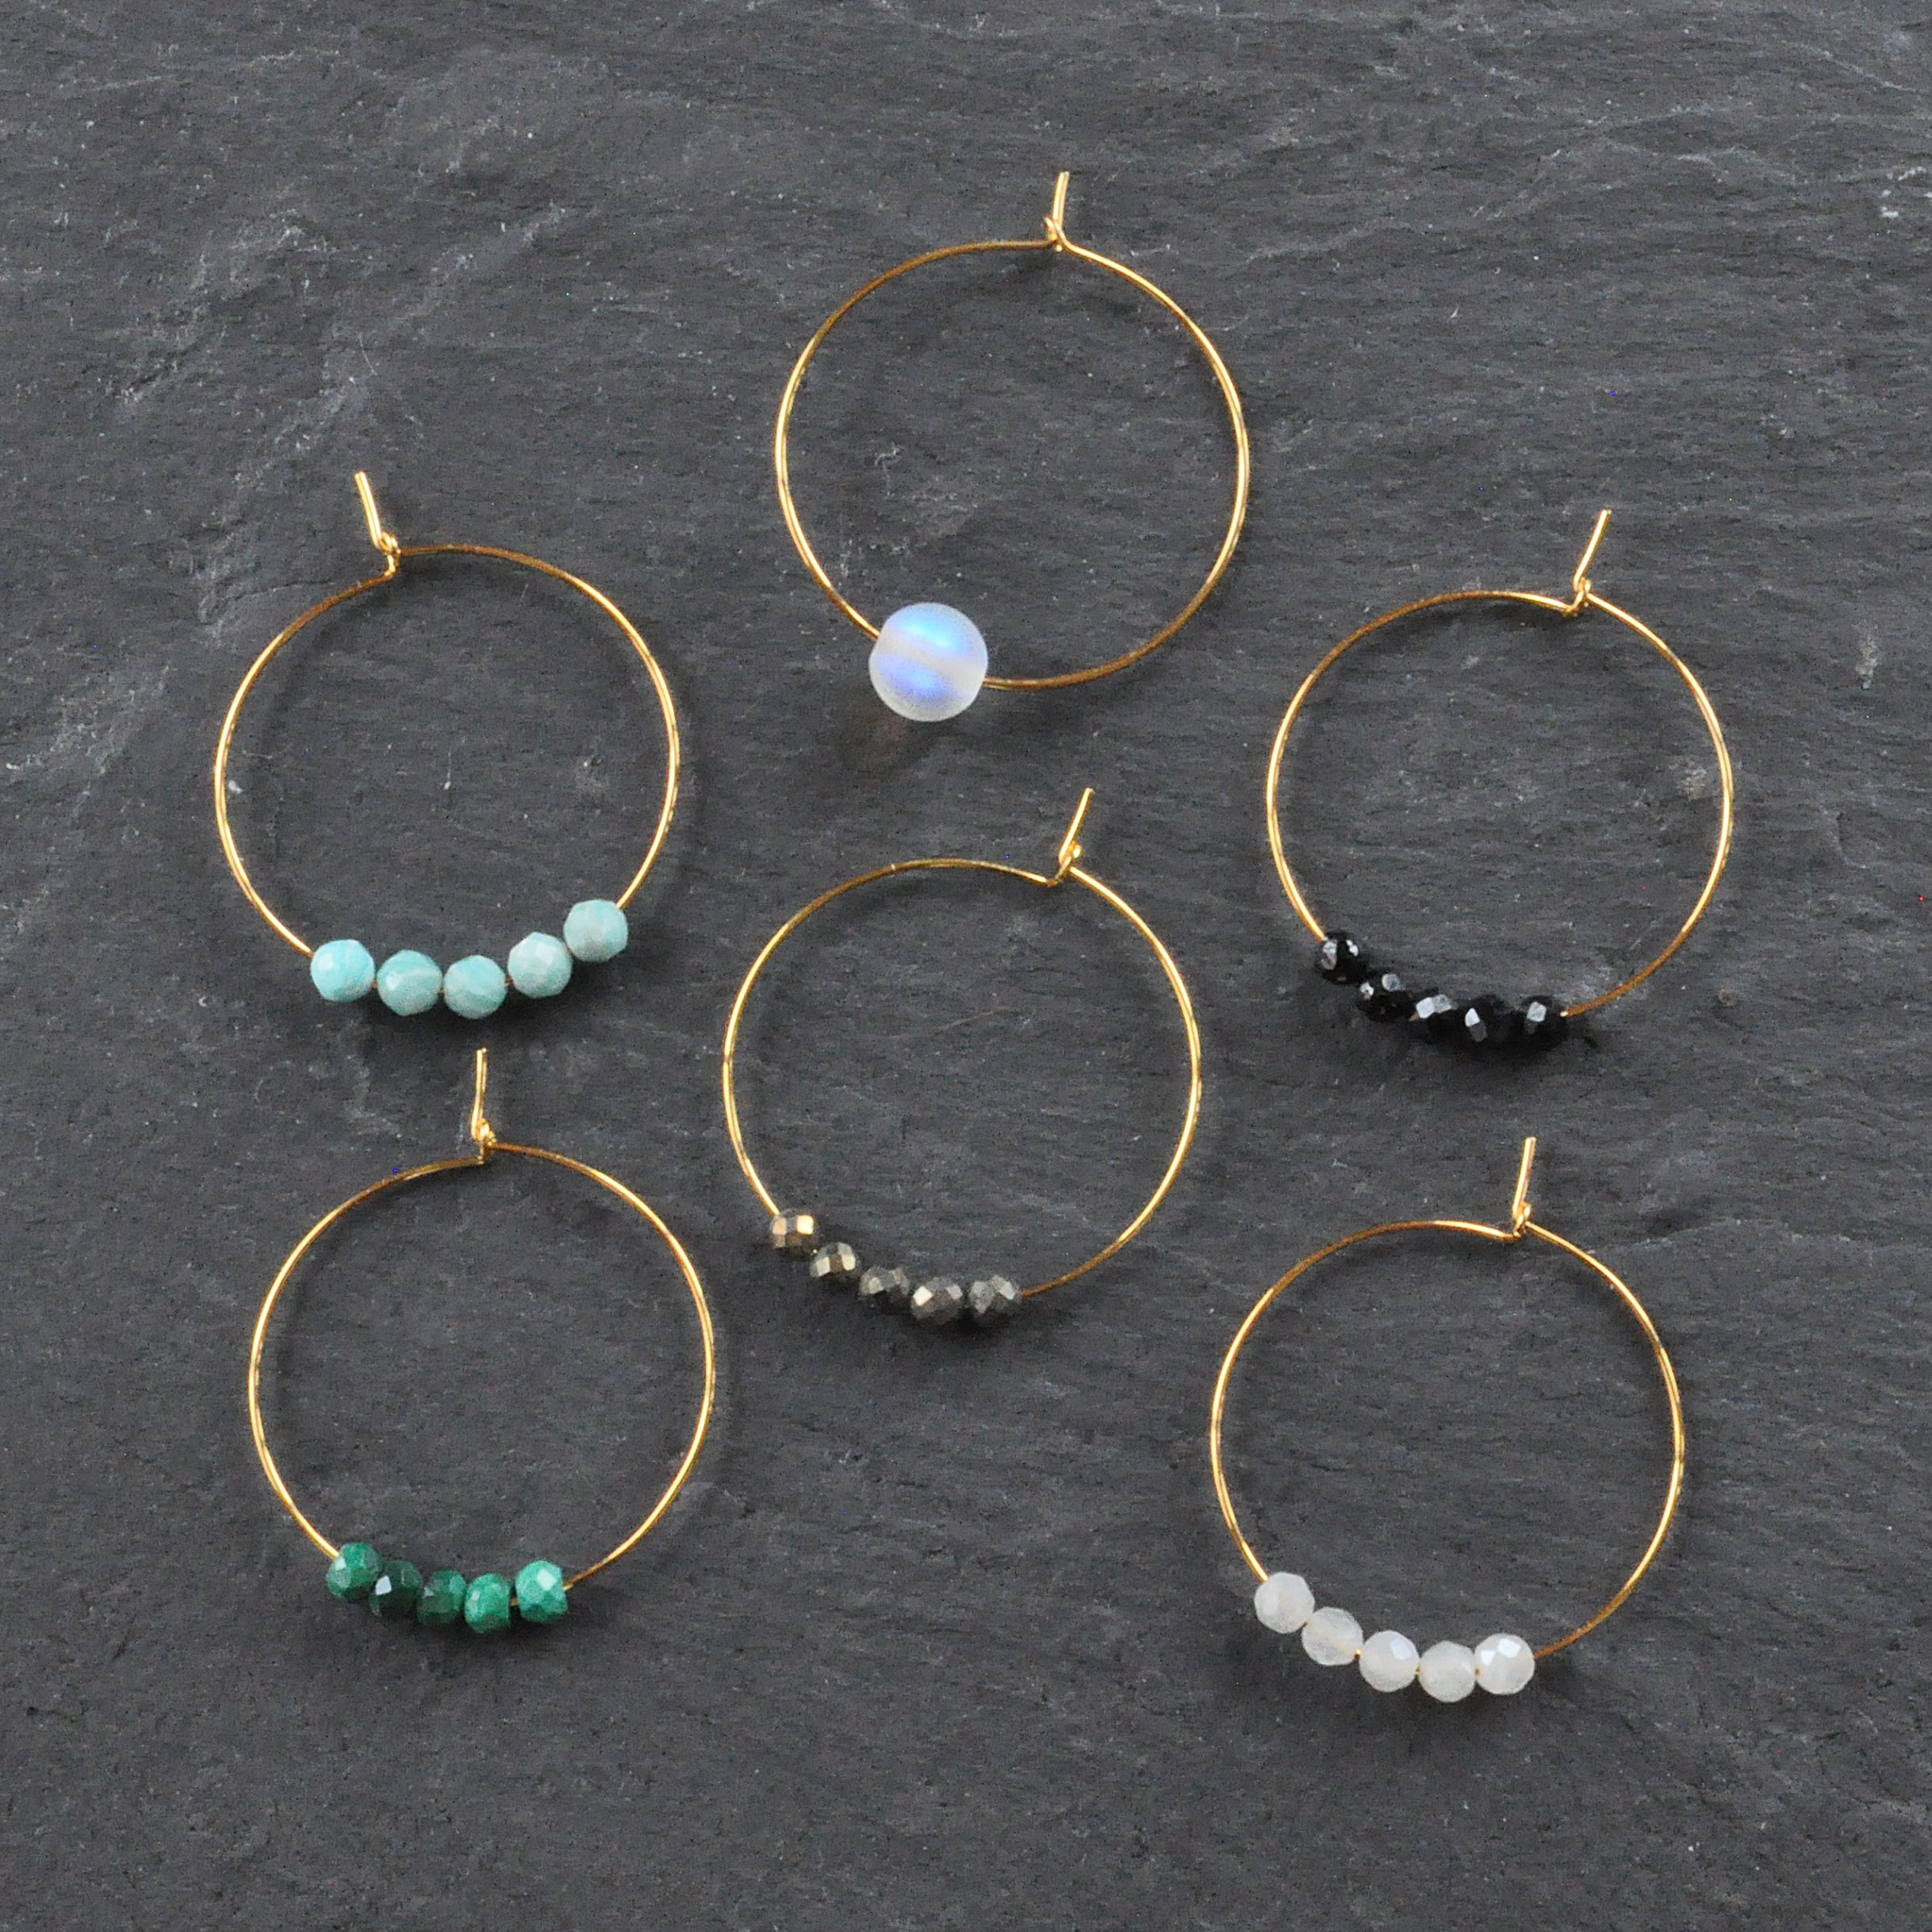 Libby & Smee gold plated hoops